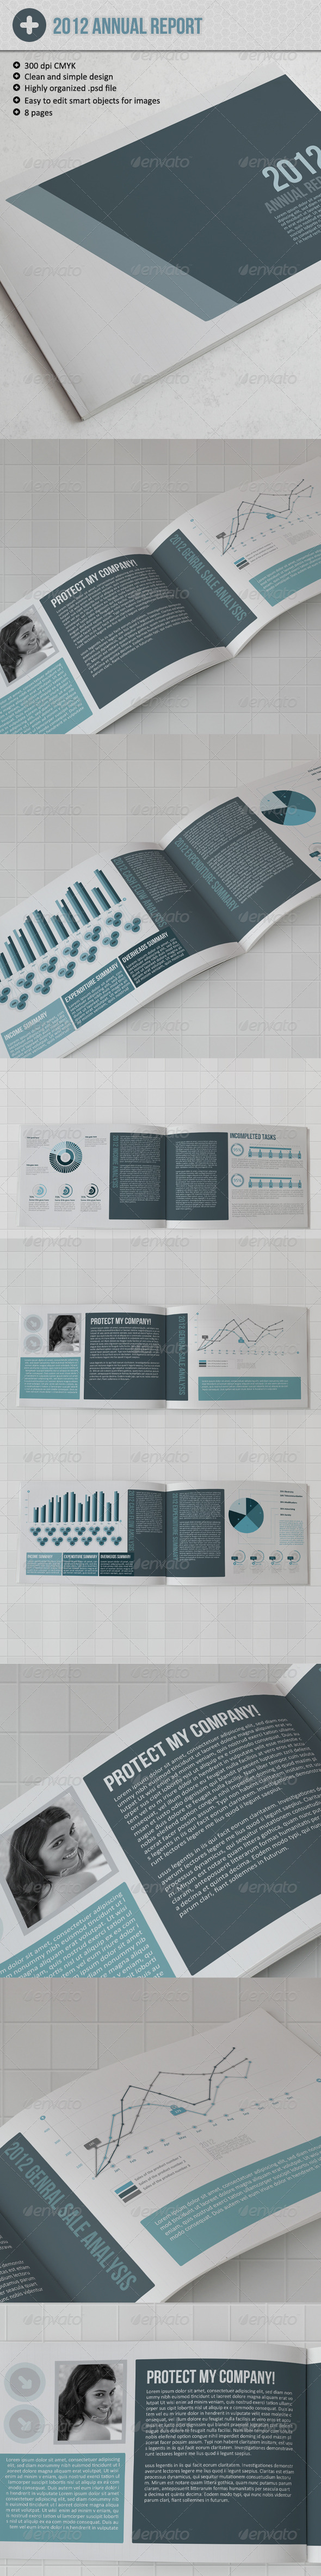 GraphicRiver Infographic Brochure Template 3429670